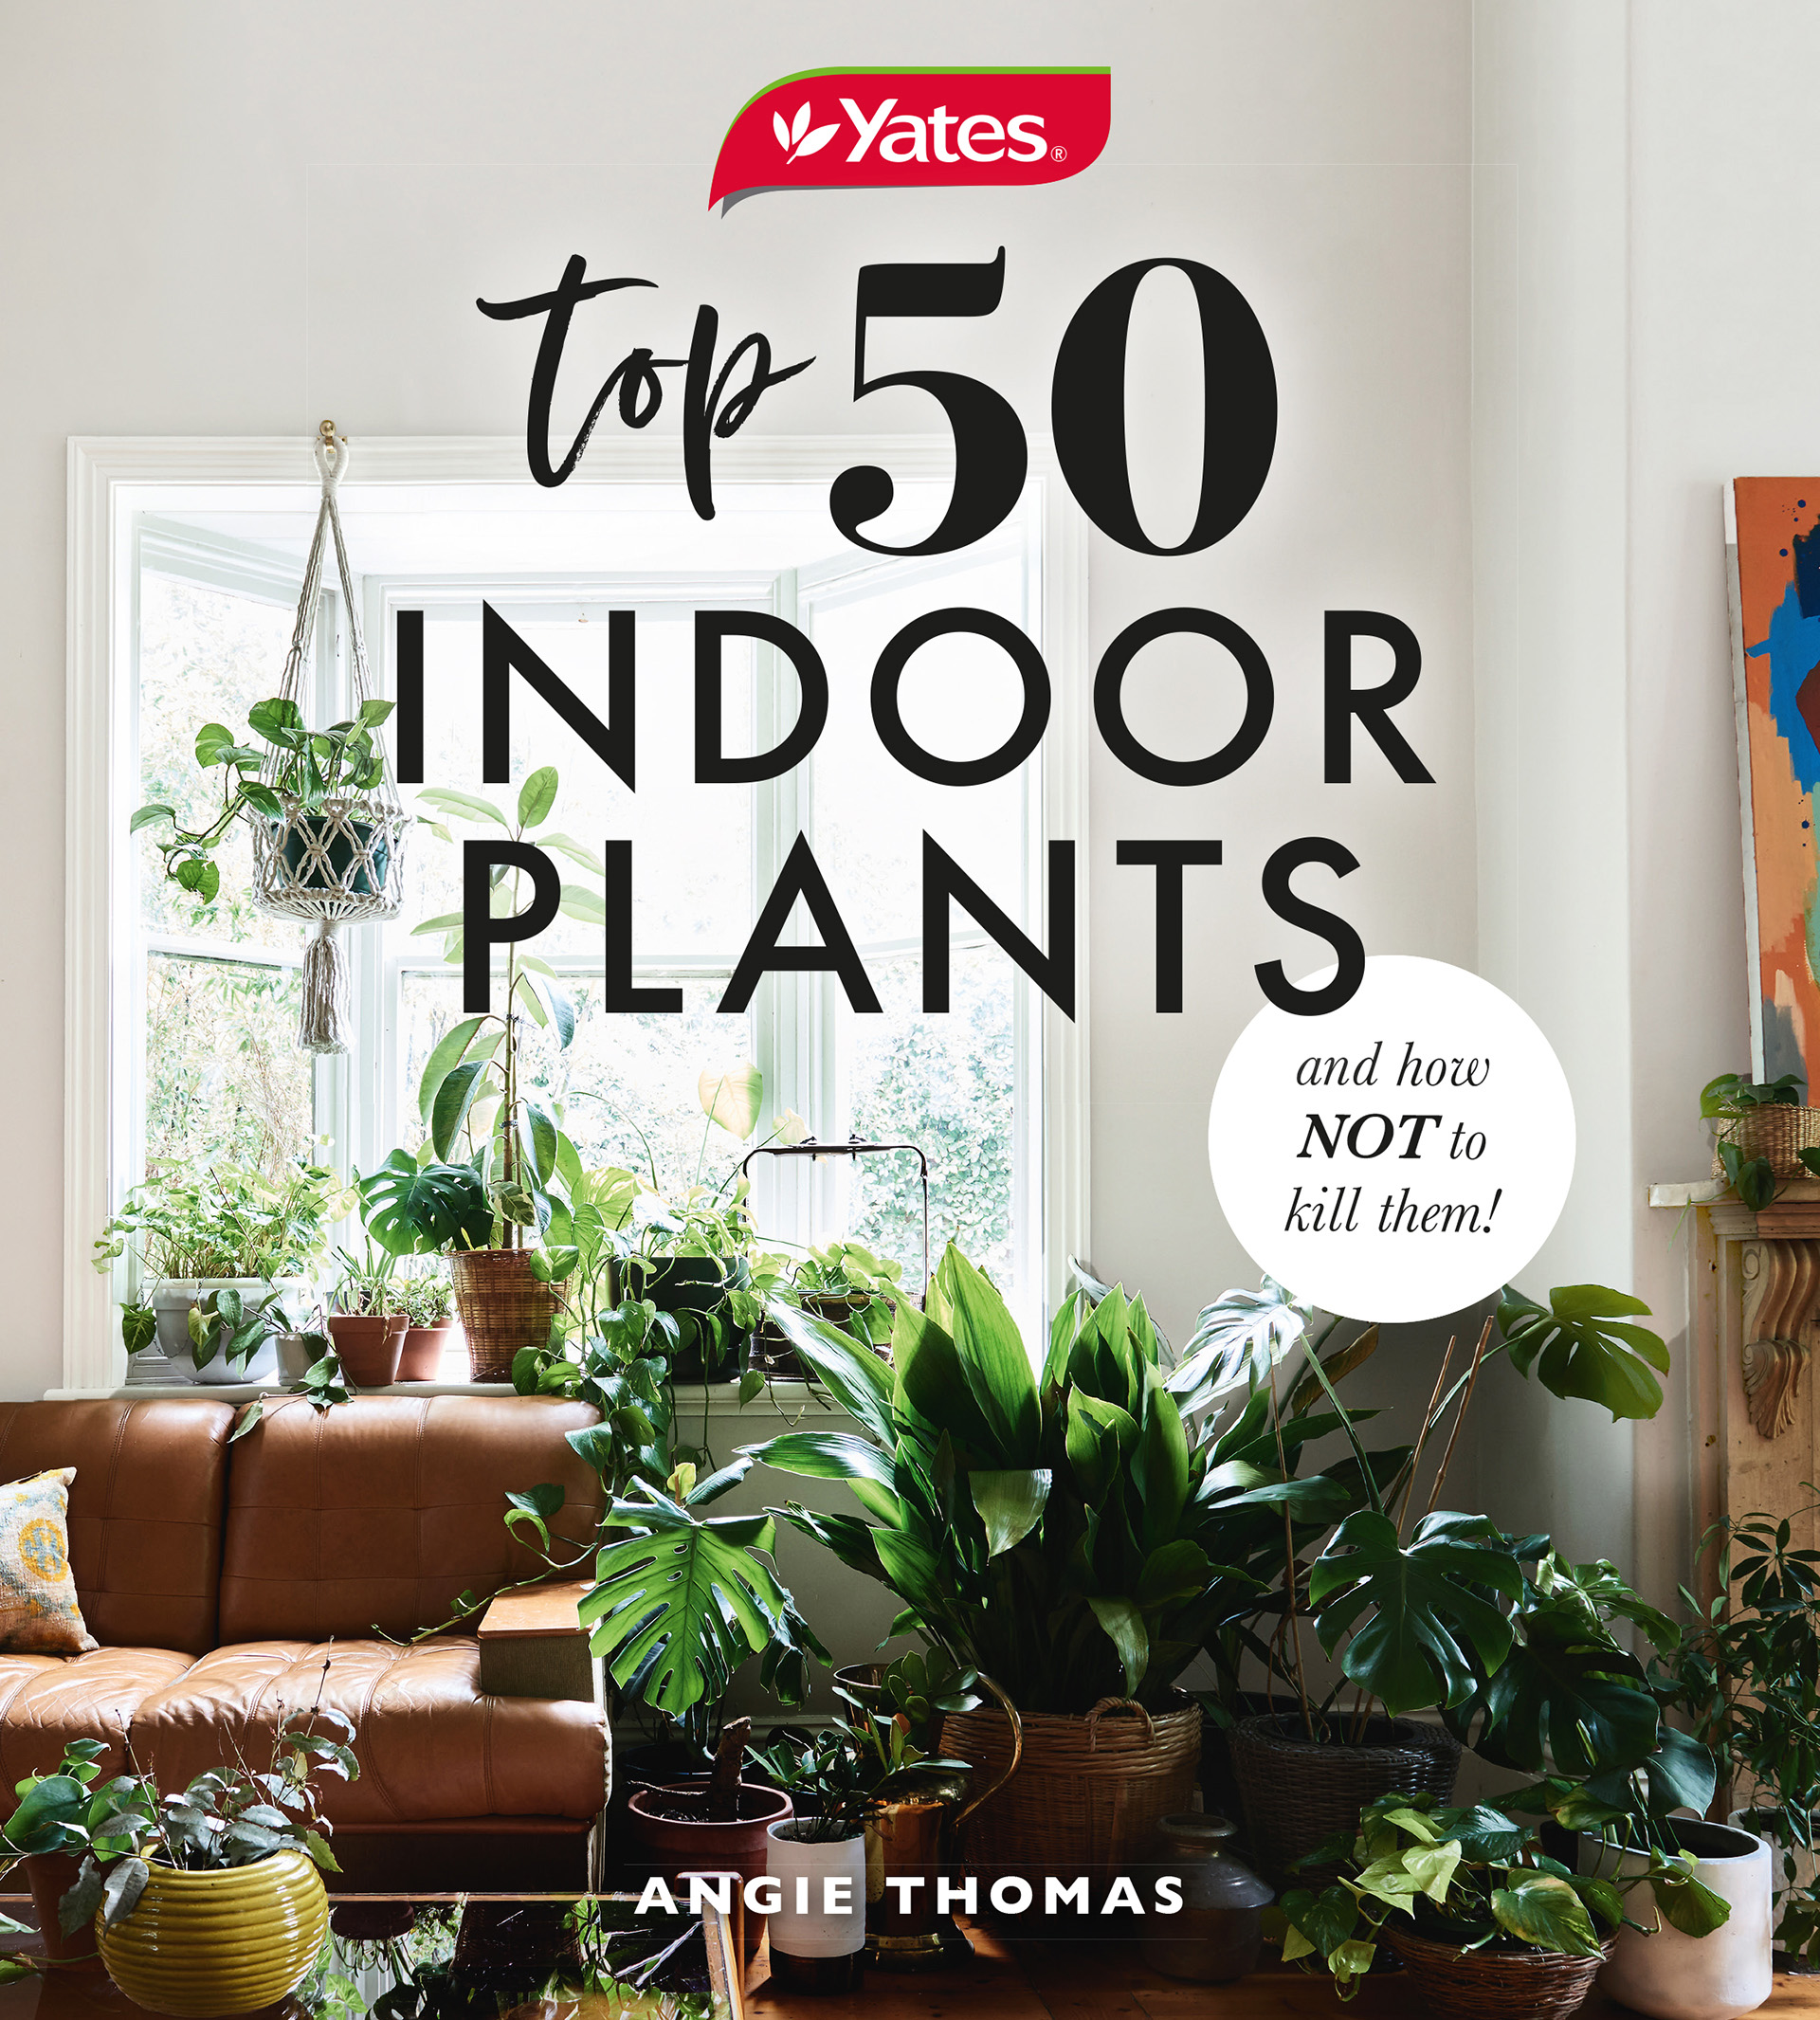 Swell Media Release Yates Top 50 Indoor Plants And How Not To Interior Design Ideas Clesiryabchikinfo